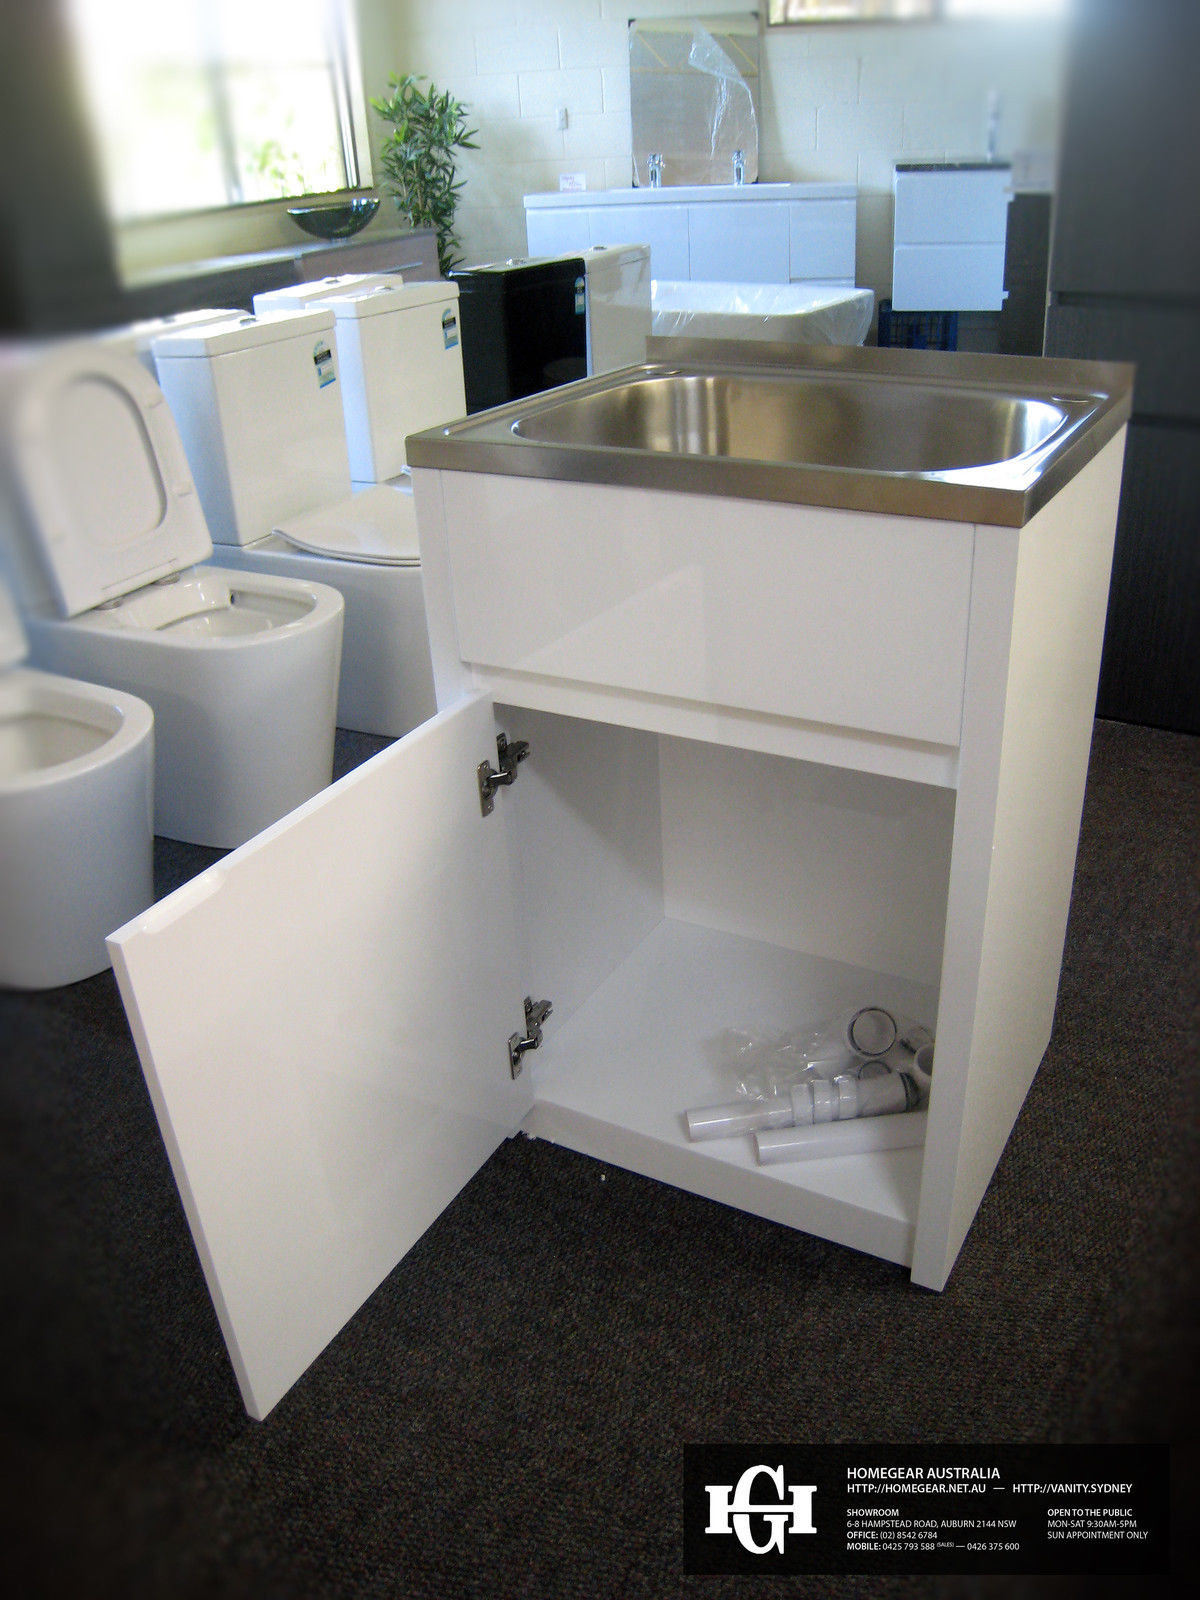 45l 600mm Stainless Steel Laundry Tub With White Gloss